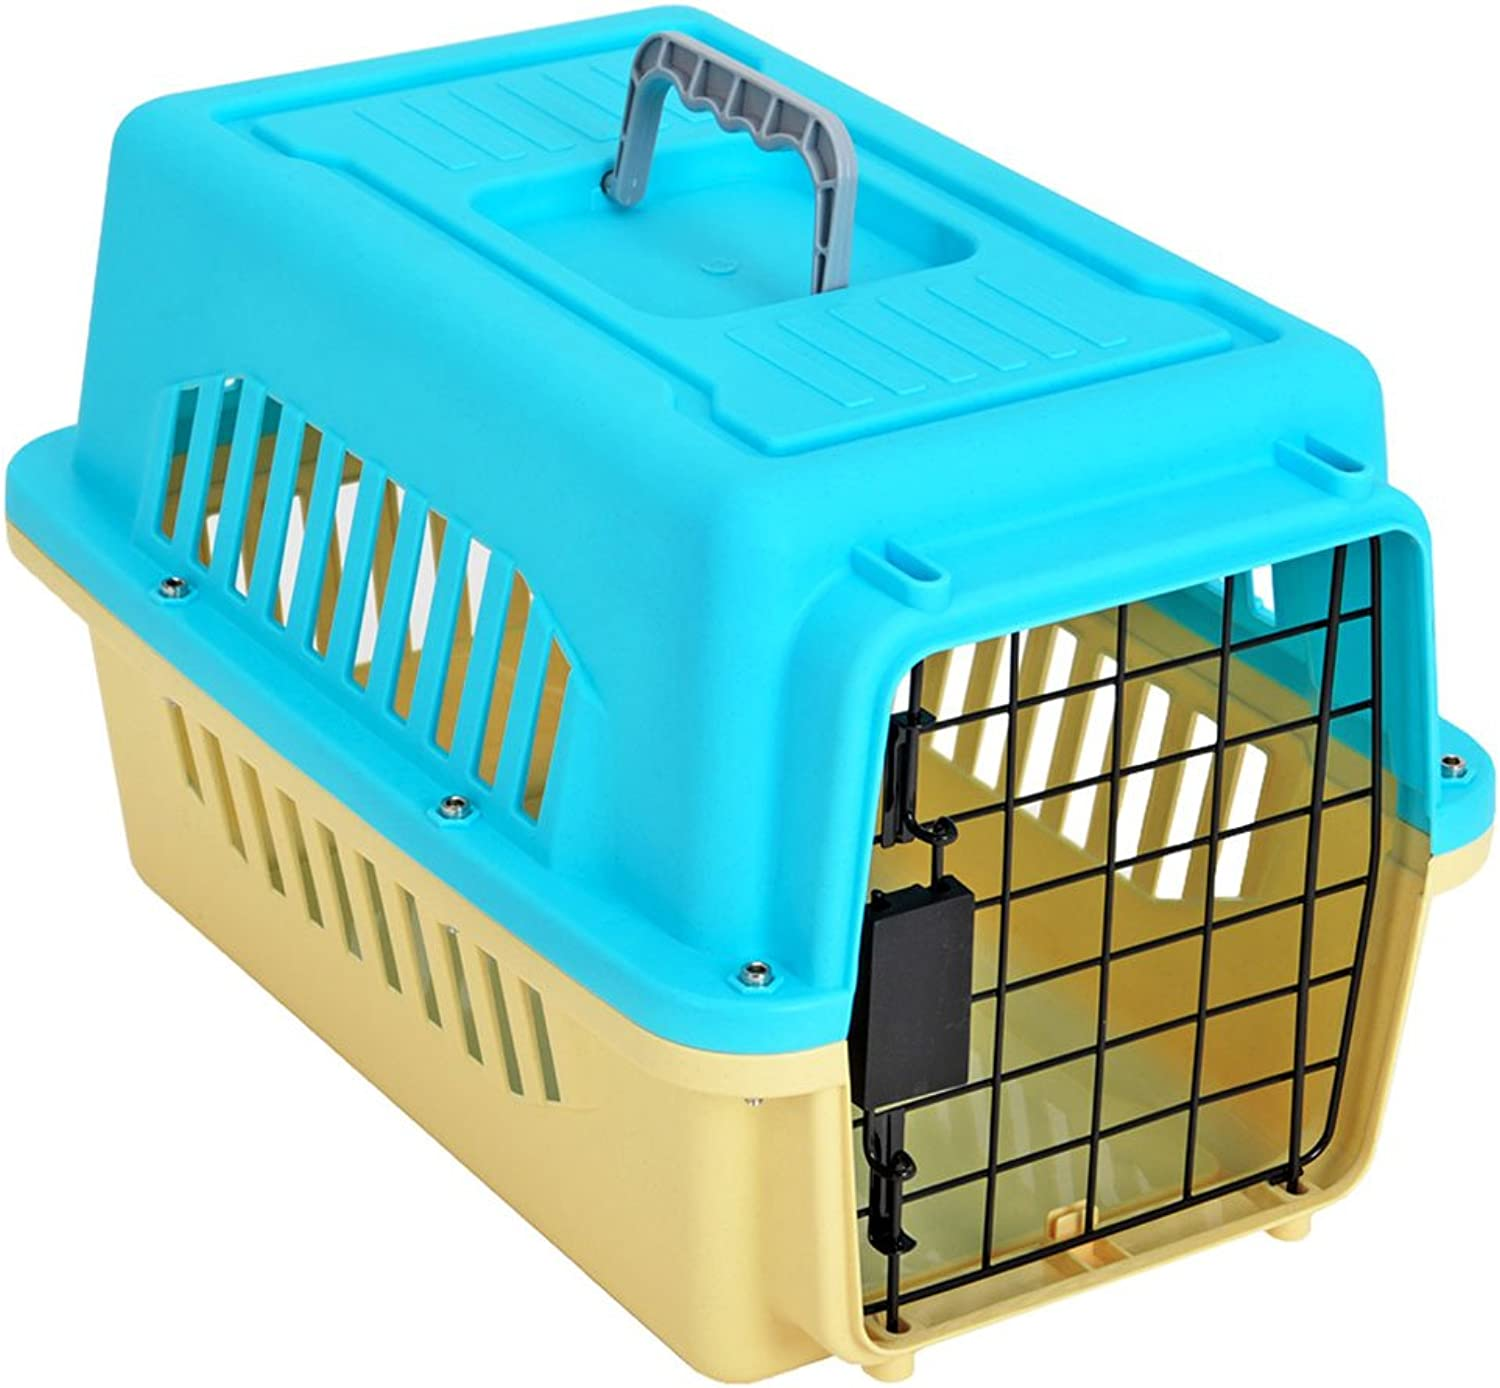 MEI Kennels Pet Travel Box, Dog Portable Outgoing Transport Box, Air Box, Teddy Dog Cage, Air Freight Box, Cat Shipping Box, Pet Supplies